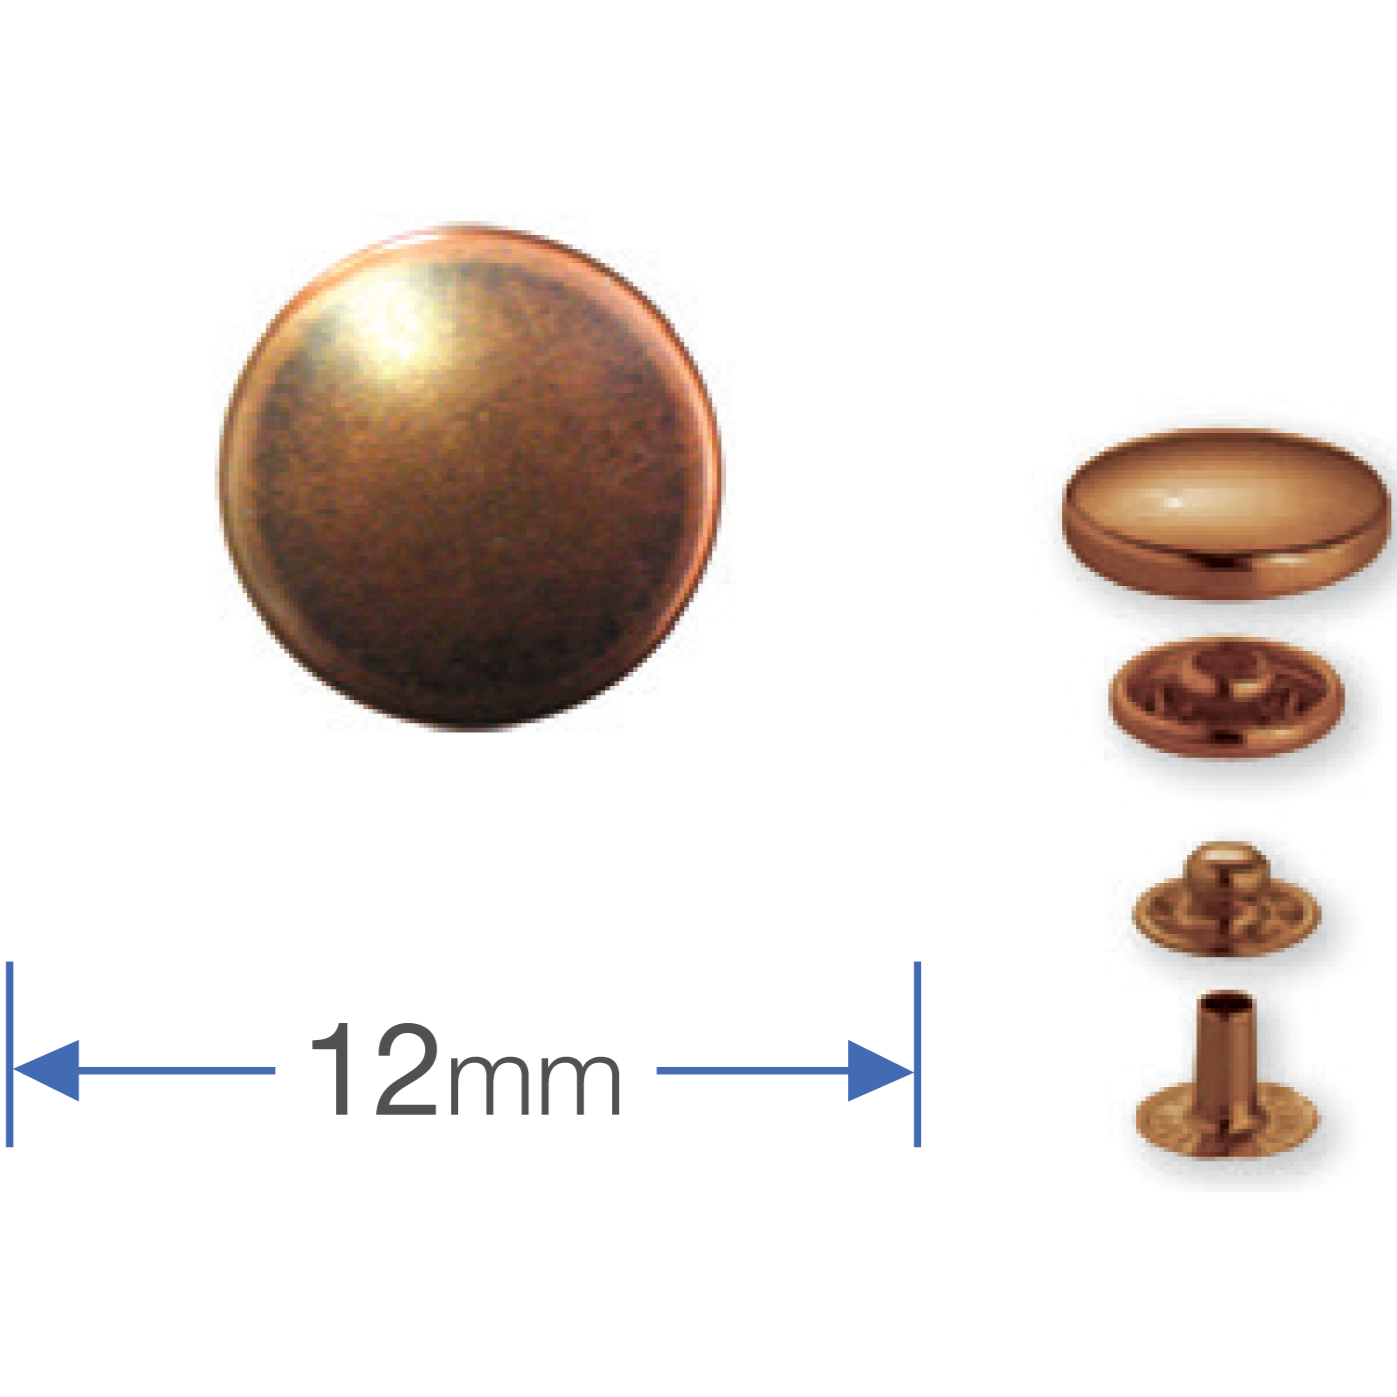 Press Studs (Non-Sew) - Antique Copper 12mm: PACK OF 10